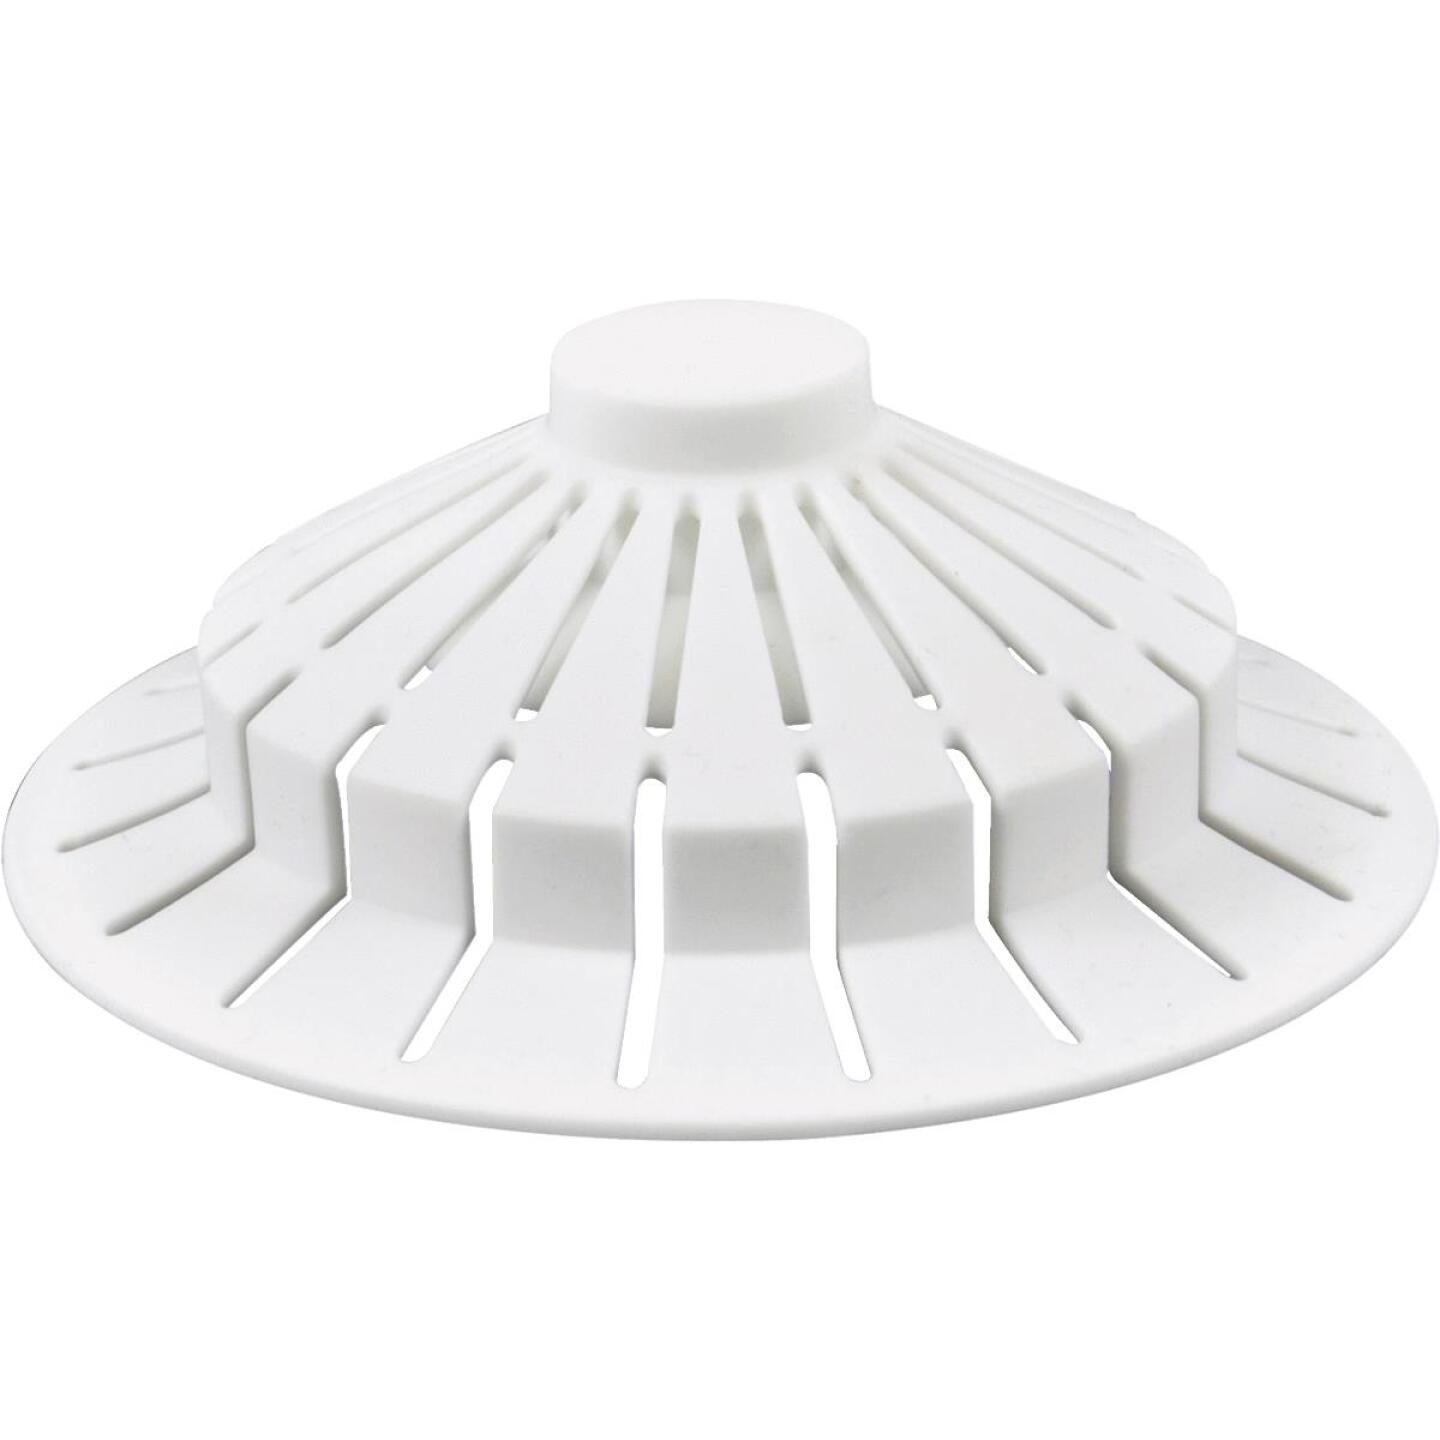 Danco Standard Size Suction Cup Silicone Tub Drain Strainer Image 1